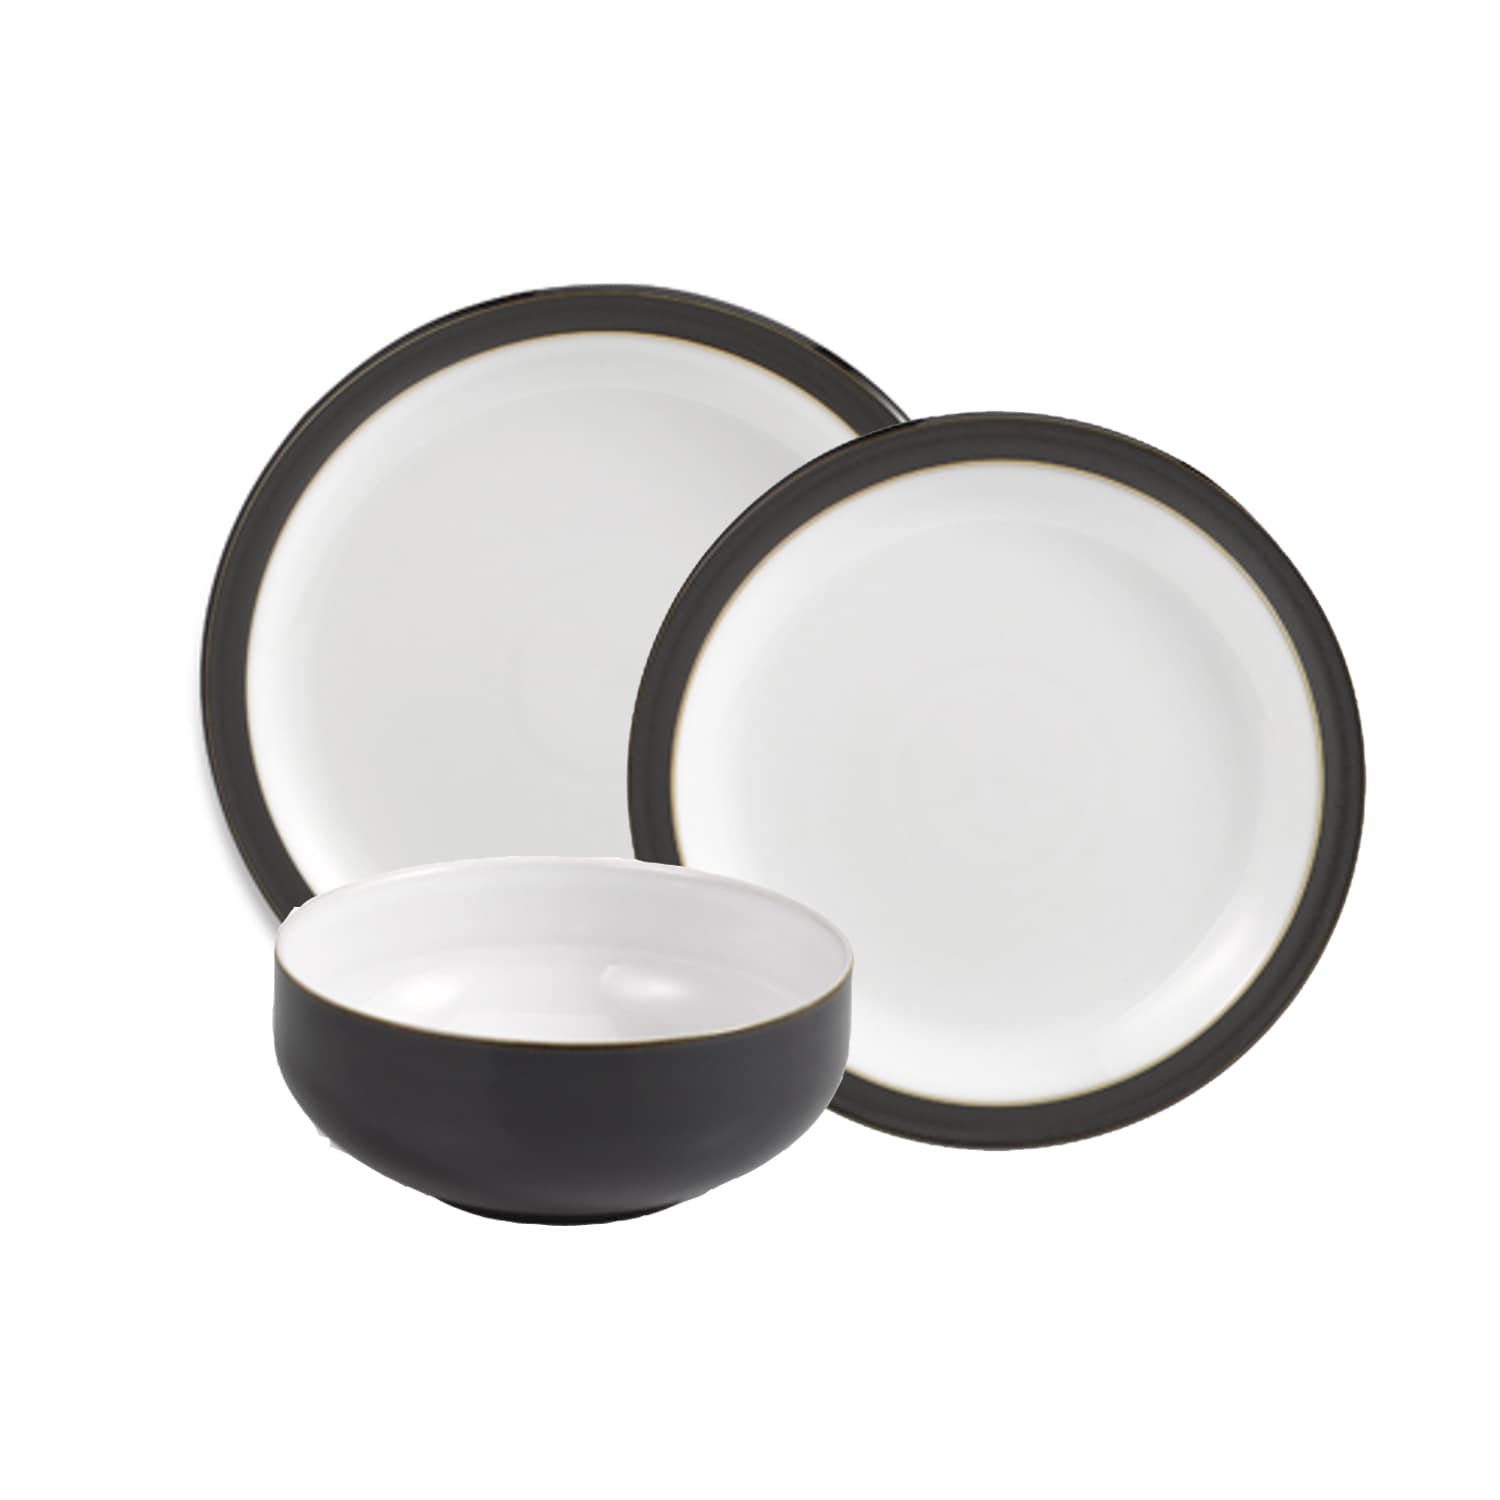 Denby Jet Black 12-piece Dinnerware Set - Free Shipping Today - Overstock - 18678251  sc 1 st  Overstock.com & Denby Jet Black 12-piece Dinnerware Set - Free Shipping Today ...